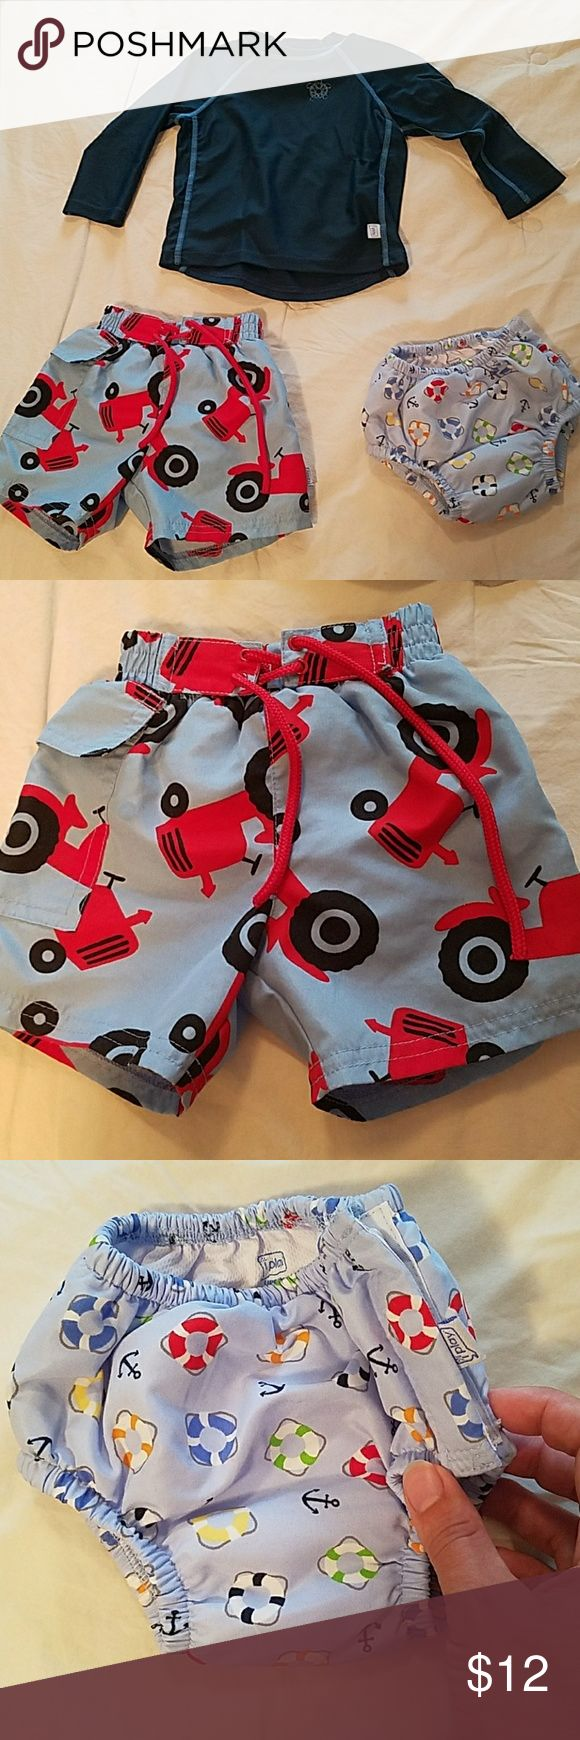 iPlay Swim Bundle Three pieces - tractor swim trunks, excellent condition size Small - see pic for iPlays size description. Anchors and life preserver swim bottoms size Medium (6-12 months). iPlay rash guard, turtle is somewhat faded and cracked, material is otherwise fine. Bottoms are both functional as cloth swim diapers (although I always added a disposable). Bundles of 2 or more kids or maternity listings listings are 15% off, just ask. Swim